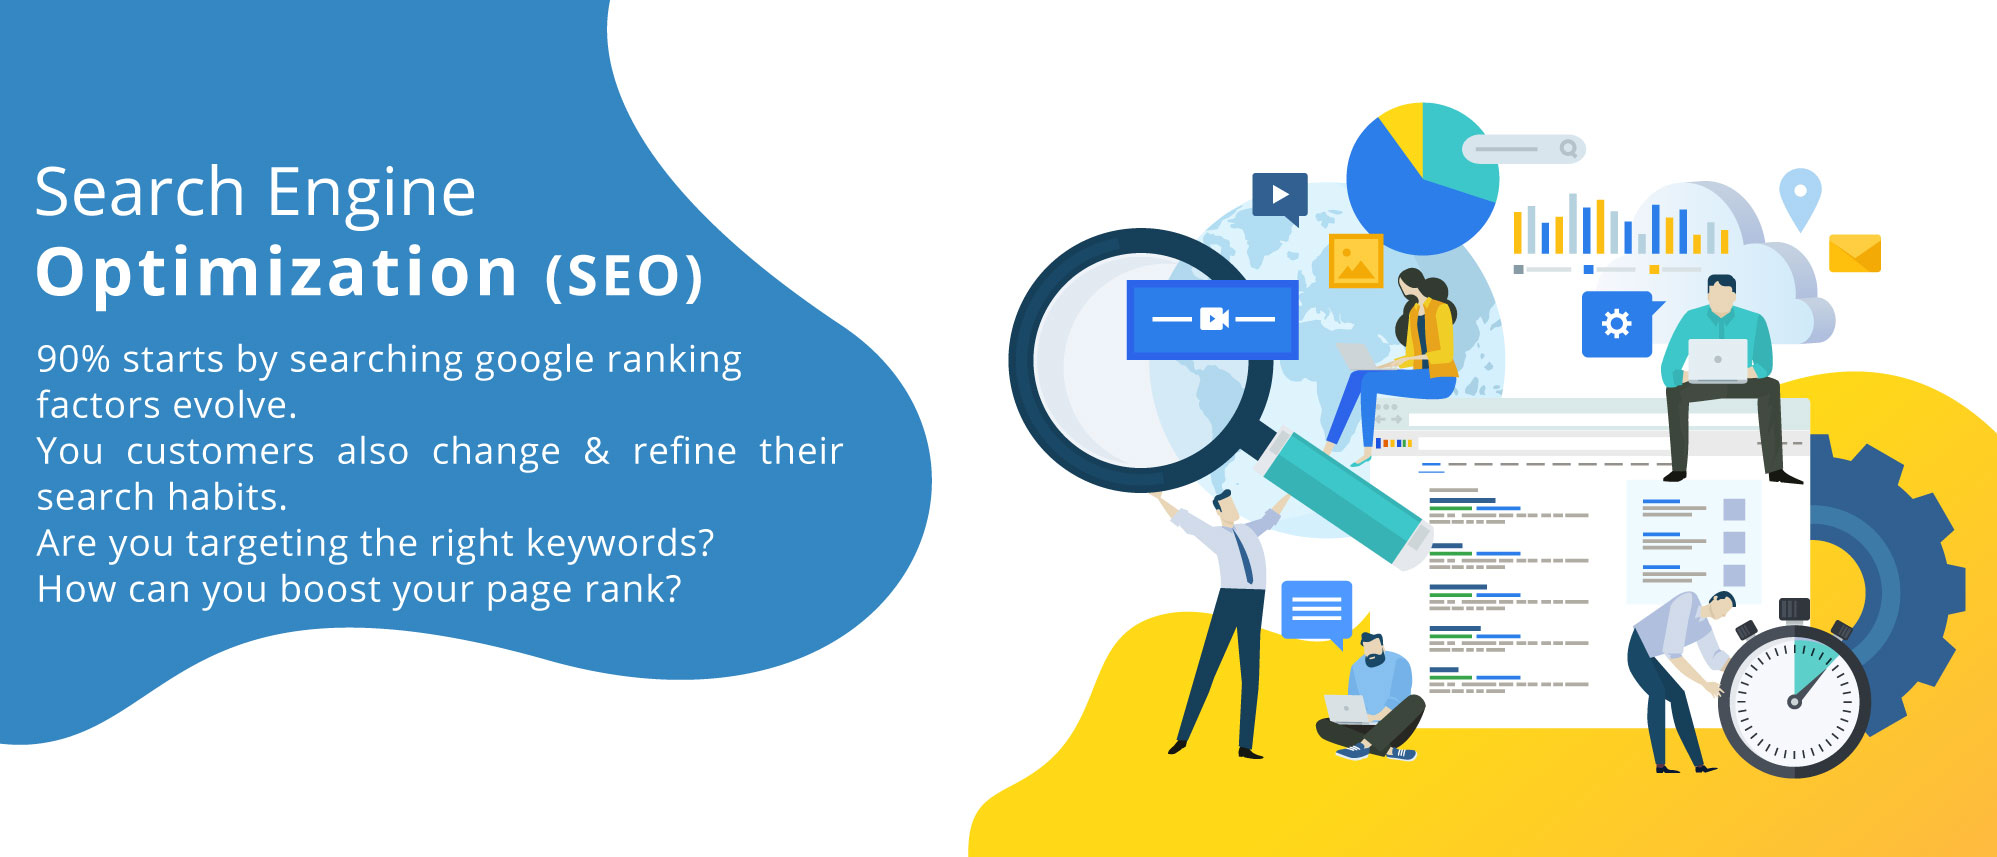 Search Engine Optimization ( SEO ), Search Engine Optimization ( SEO ) Lebanon Beirut, Search Engine Optimization ( SEO ) In Lebanon Beirut